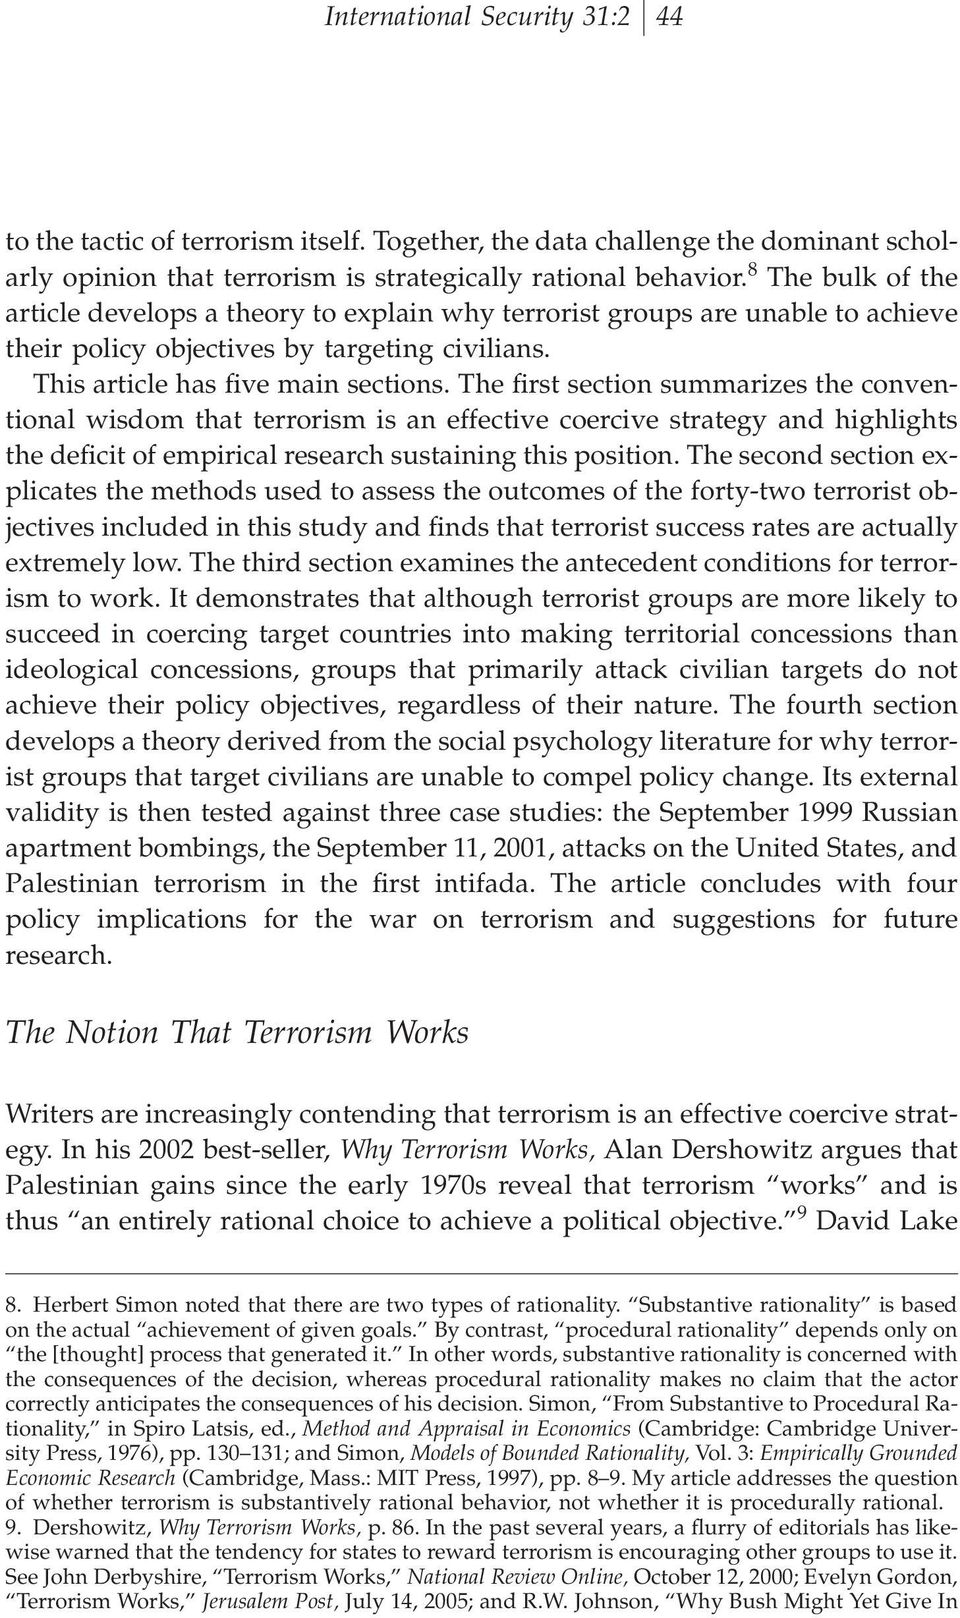 The ªrst section summarizes the conventional wisdom that terrorism is an effective coercive strategy and highlights the deªcit of empirical research sustaining this position.